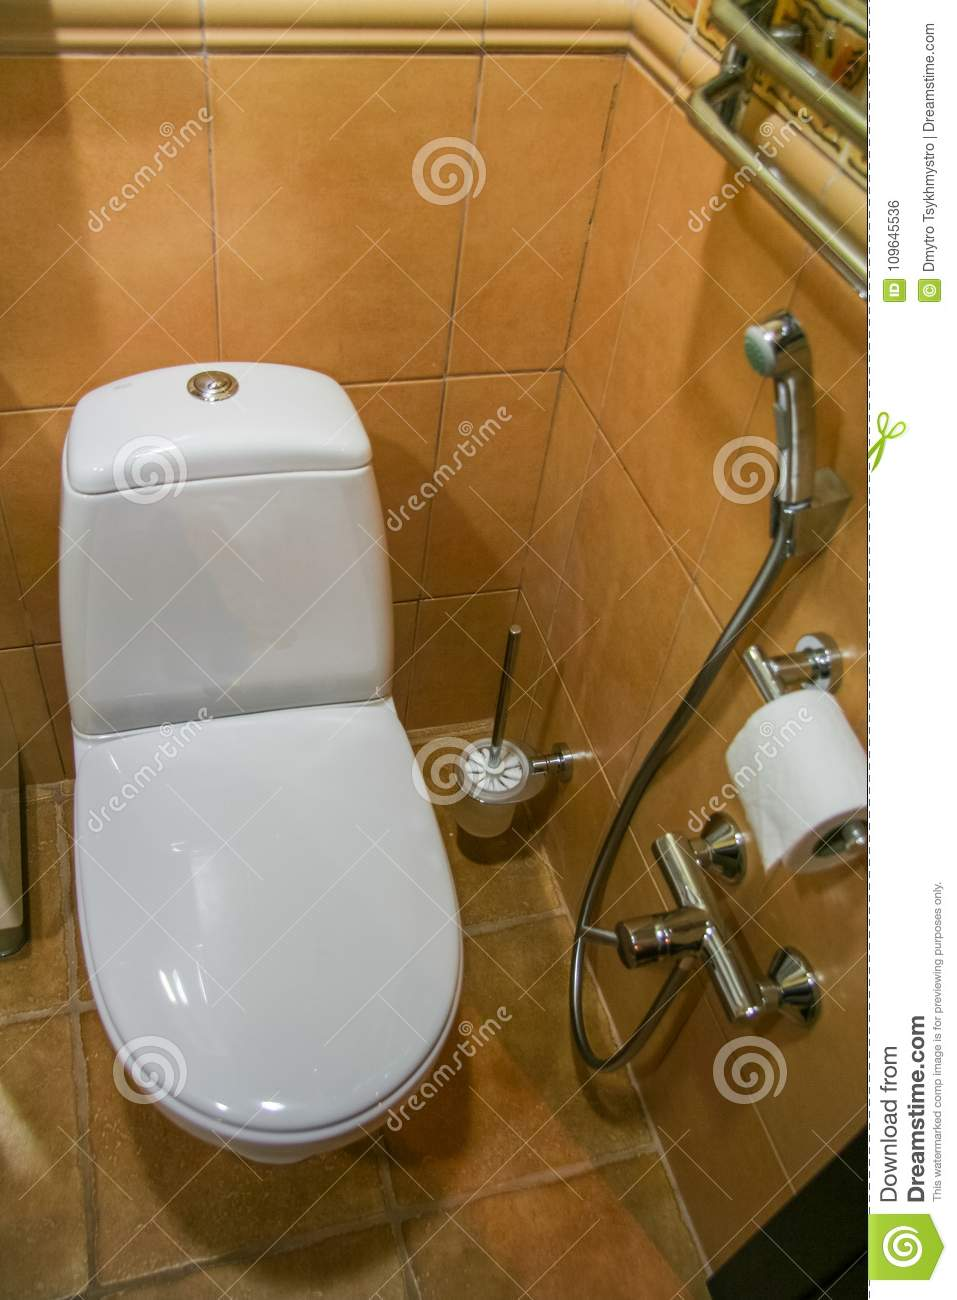 Hygienic shower in the toilet. Installation of hygienic shower in the toilet: instructions 58